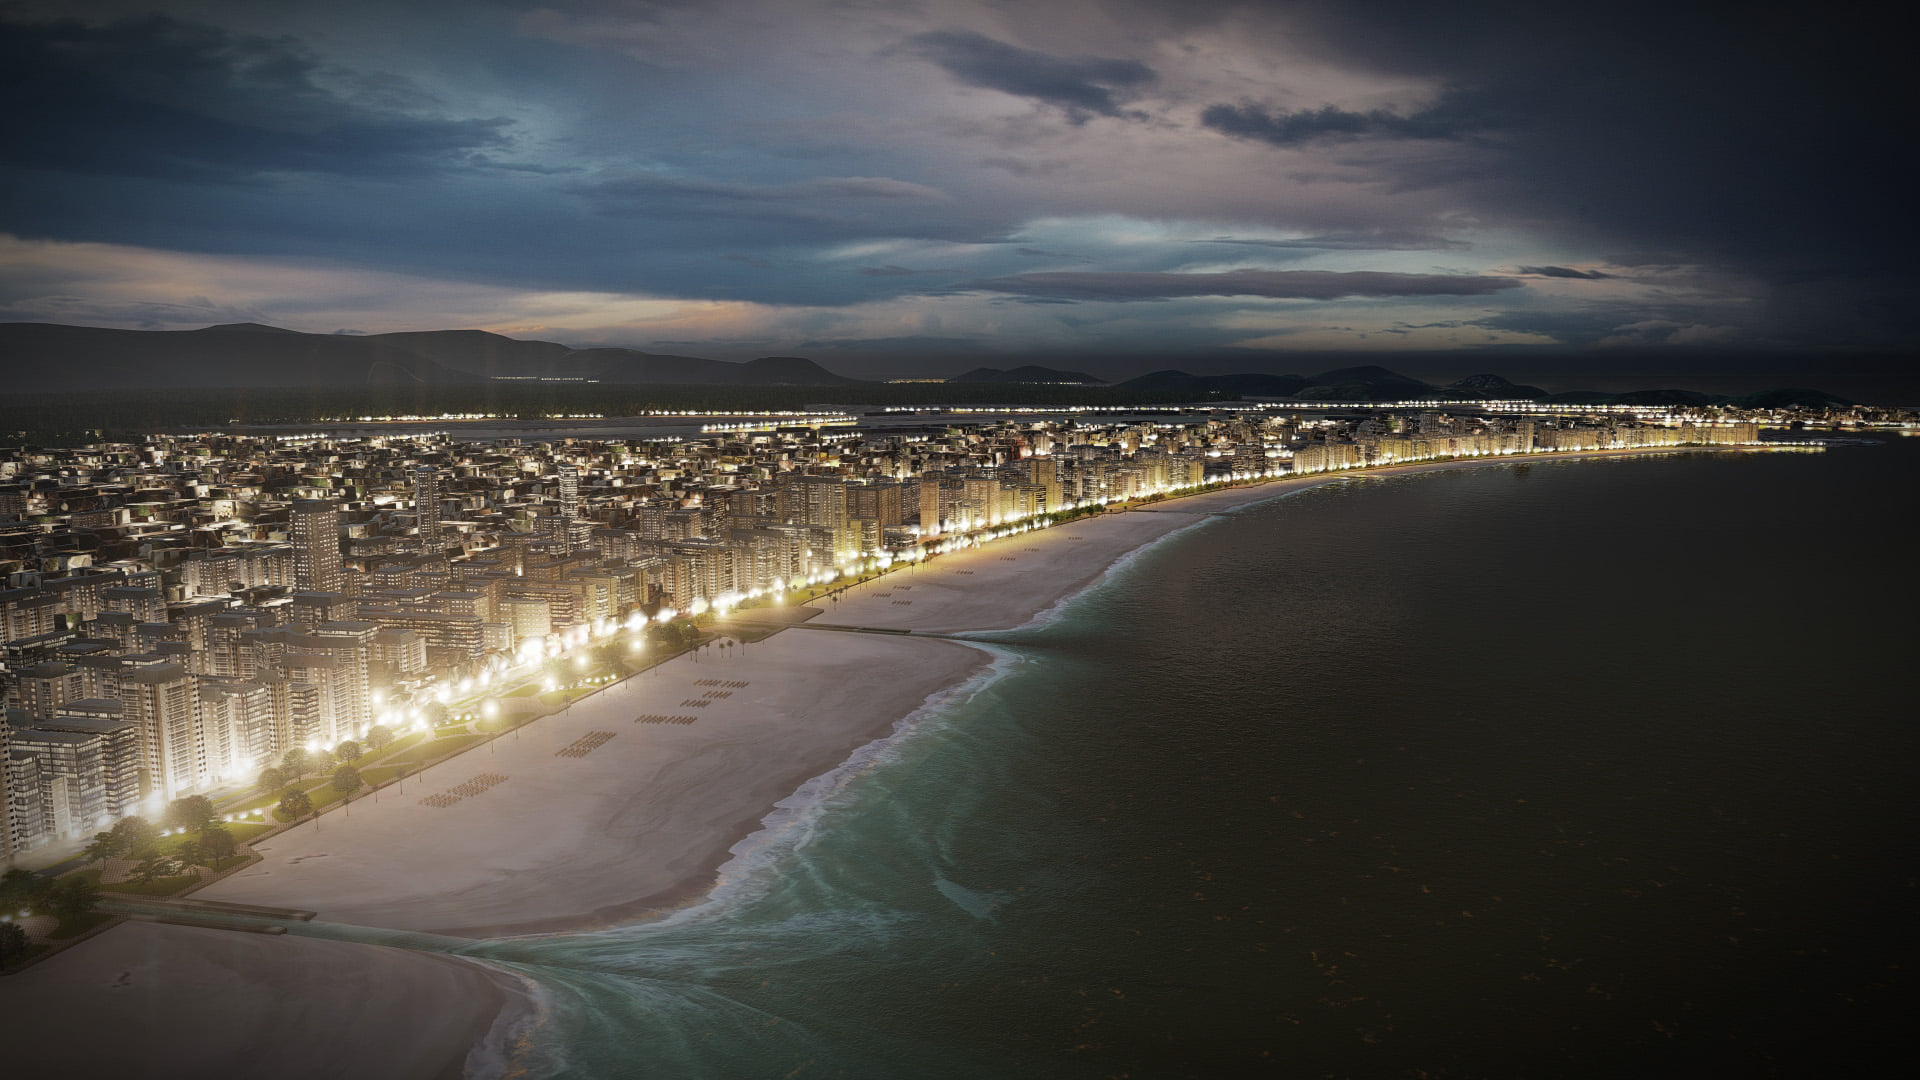 Coastline by Gilson Antunes, rendered in Lumion